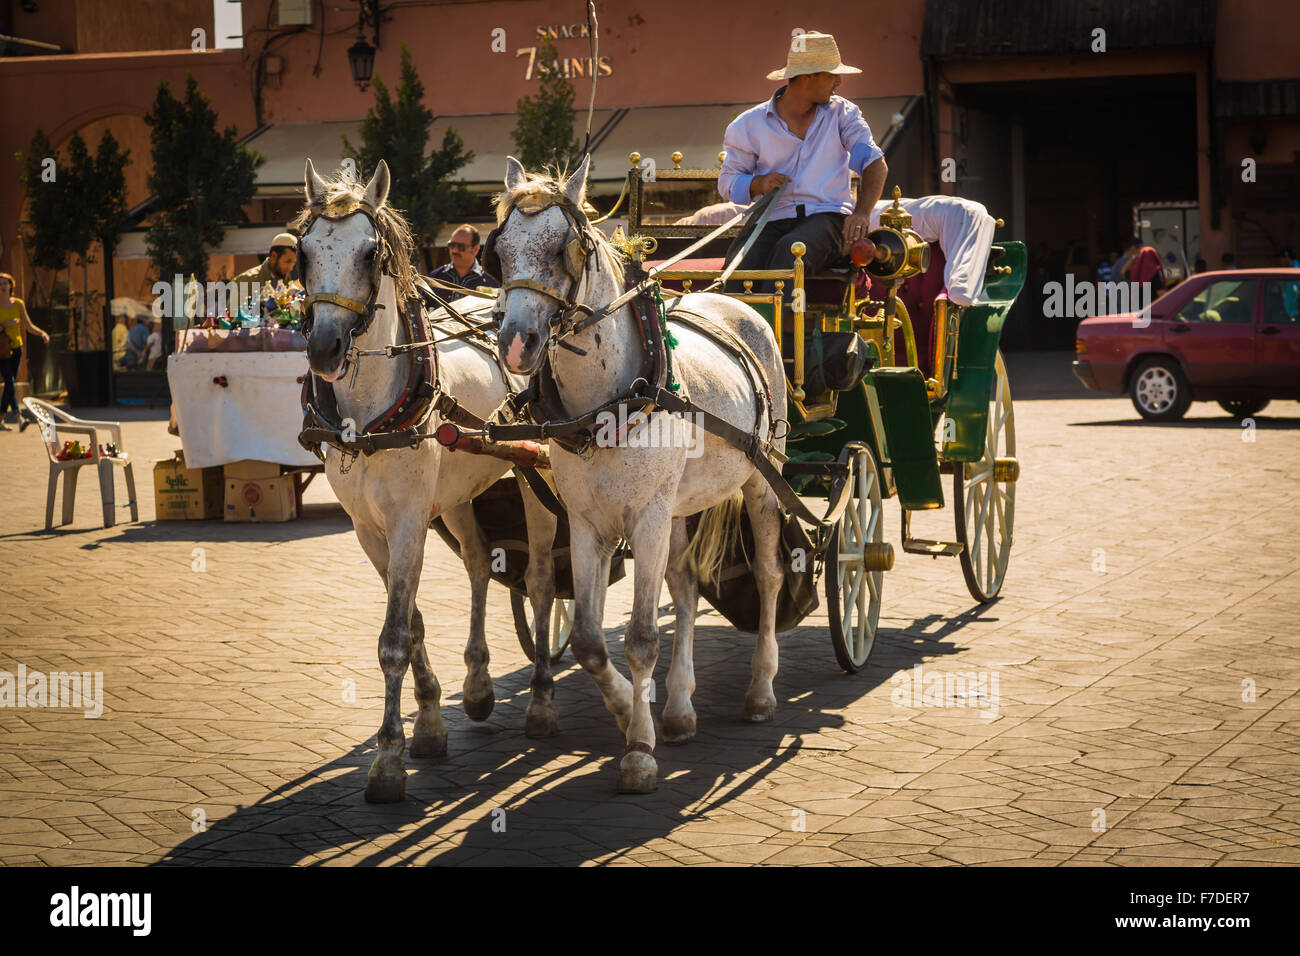 Horse carriage for tourists on Jemaa el Fna square in Marrakesh Stock Photo